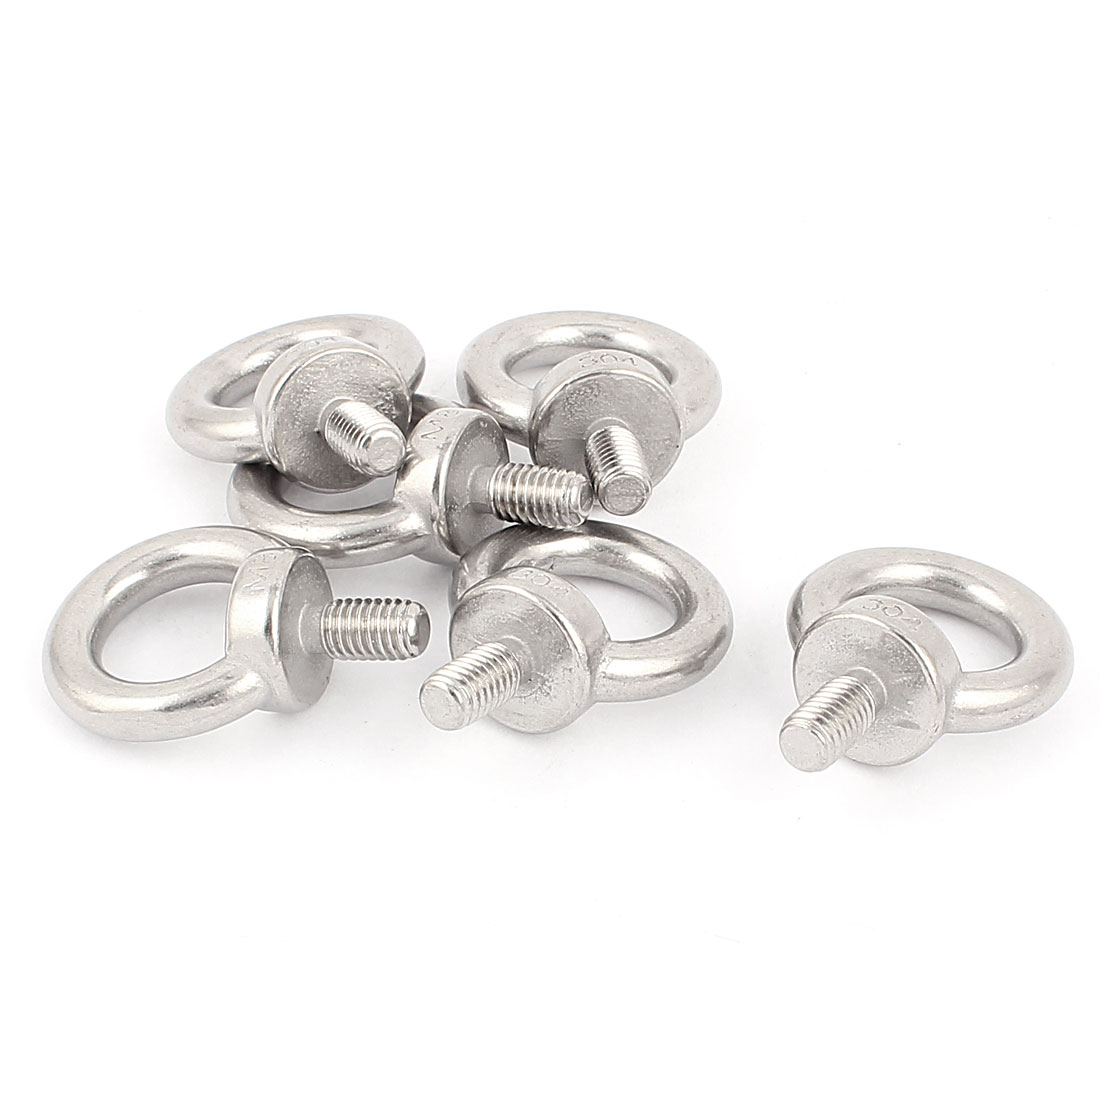 M8 x 12mm Thread Machinery Shoulder Lifting Eye Ring Bolt Silver Tone 6Pcs